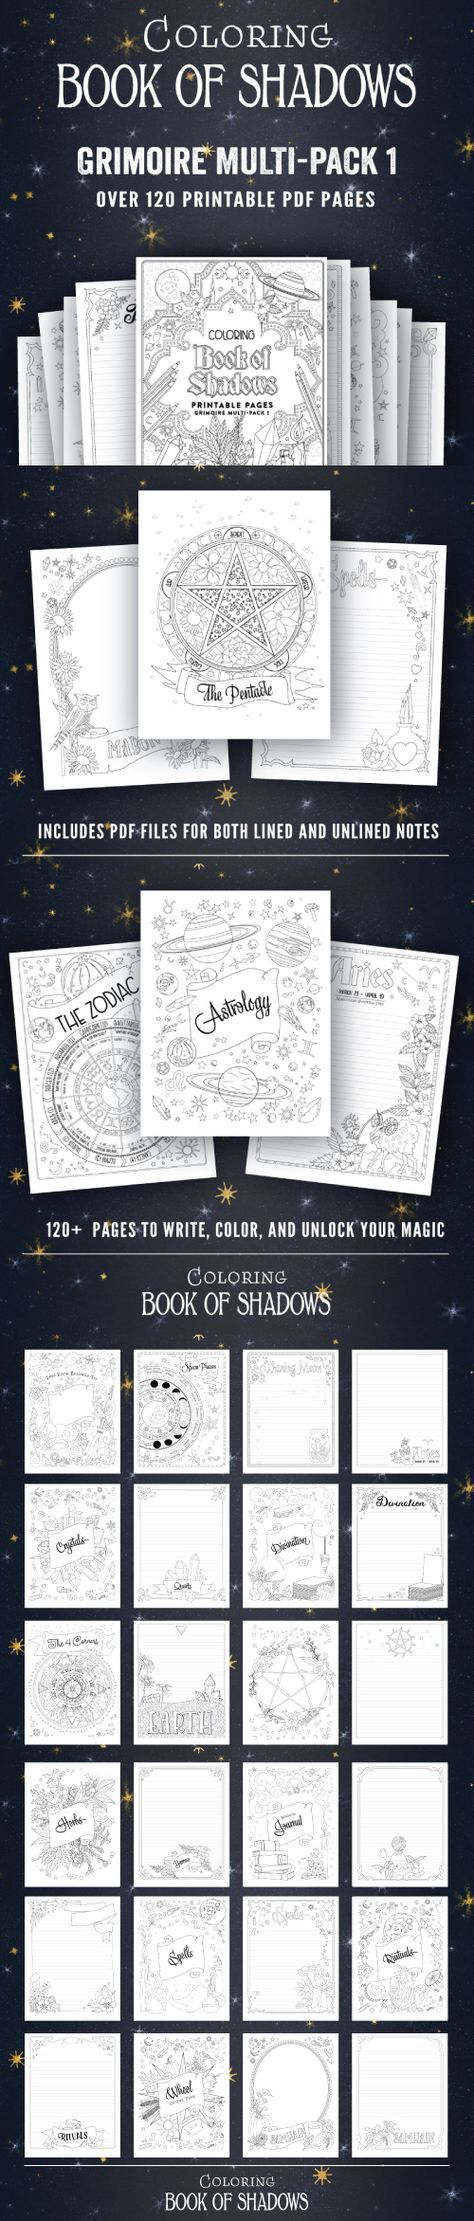 coloring book of shadows pdf - Books To Color